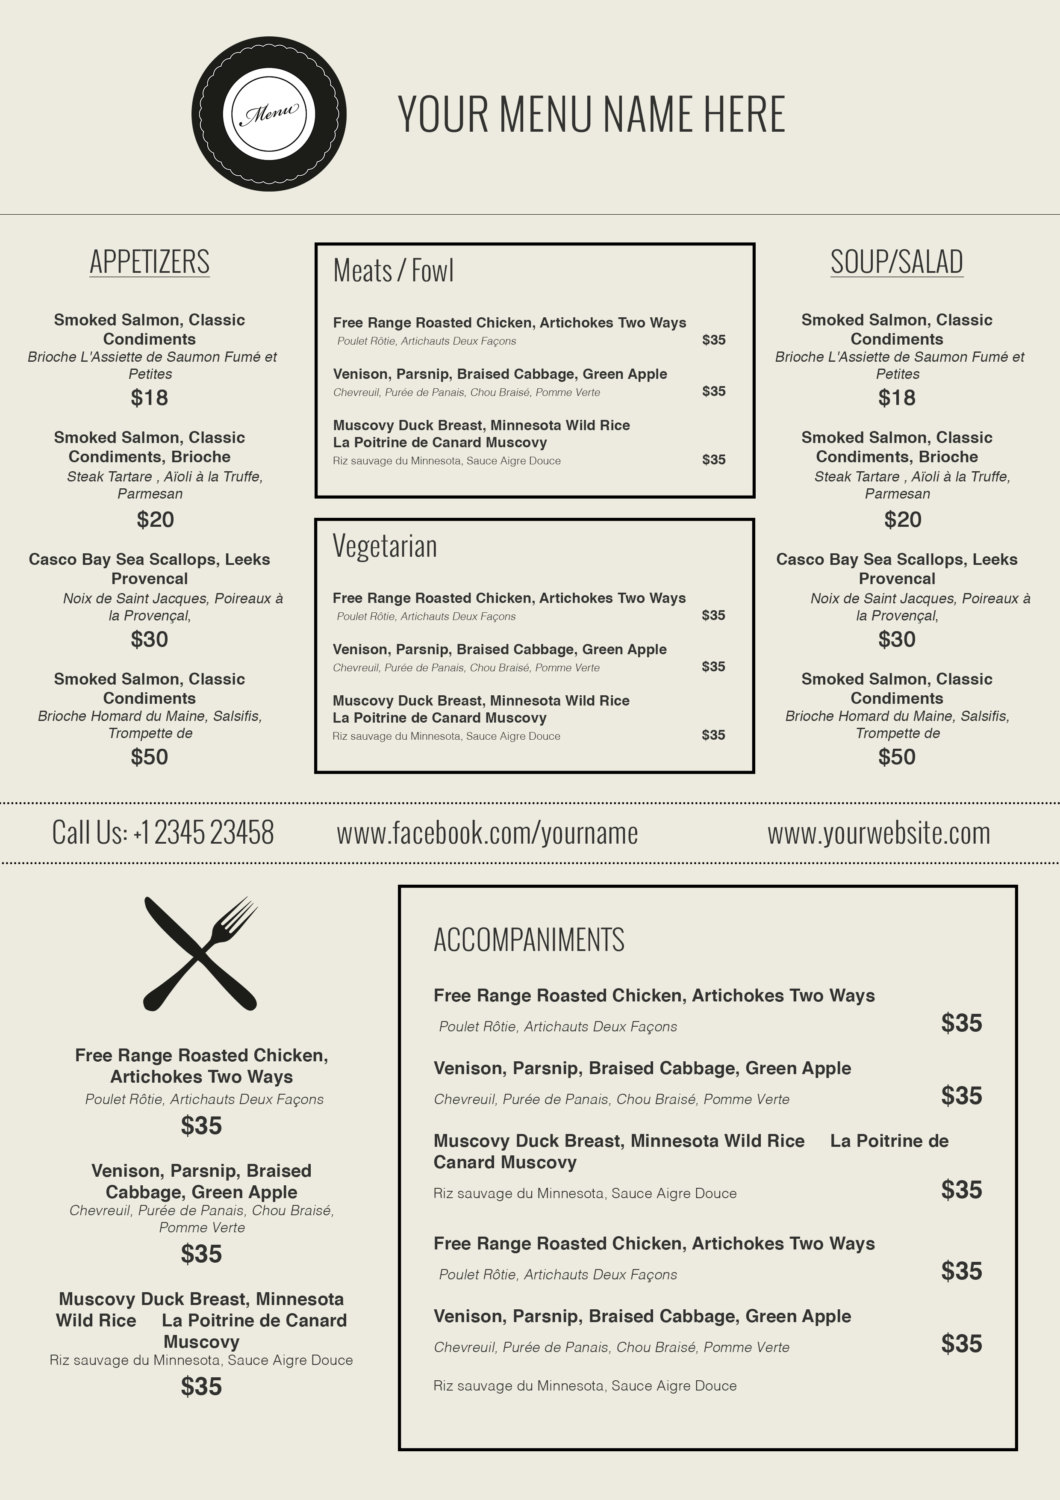 Charming Friench Food Menu Template In Ms Word Intended Free Printable Restaurant Menu Template